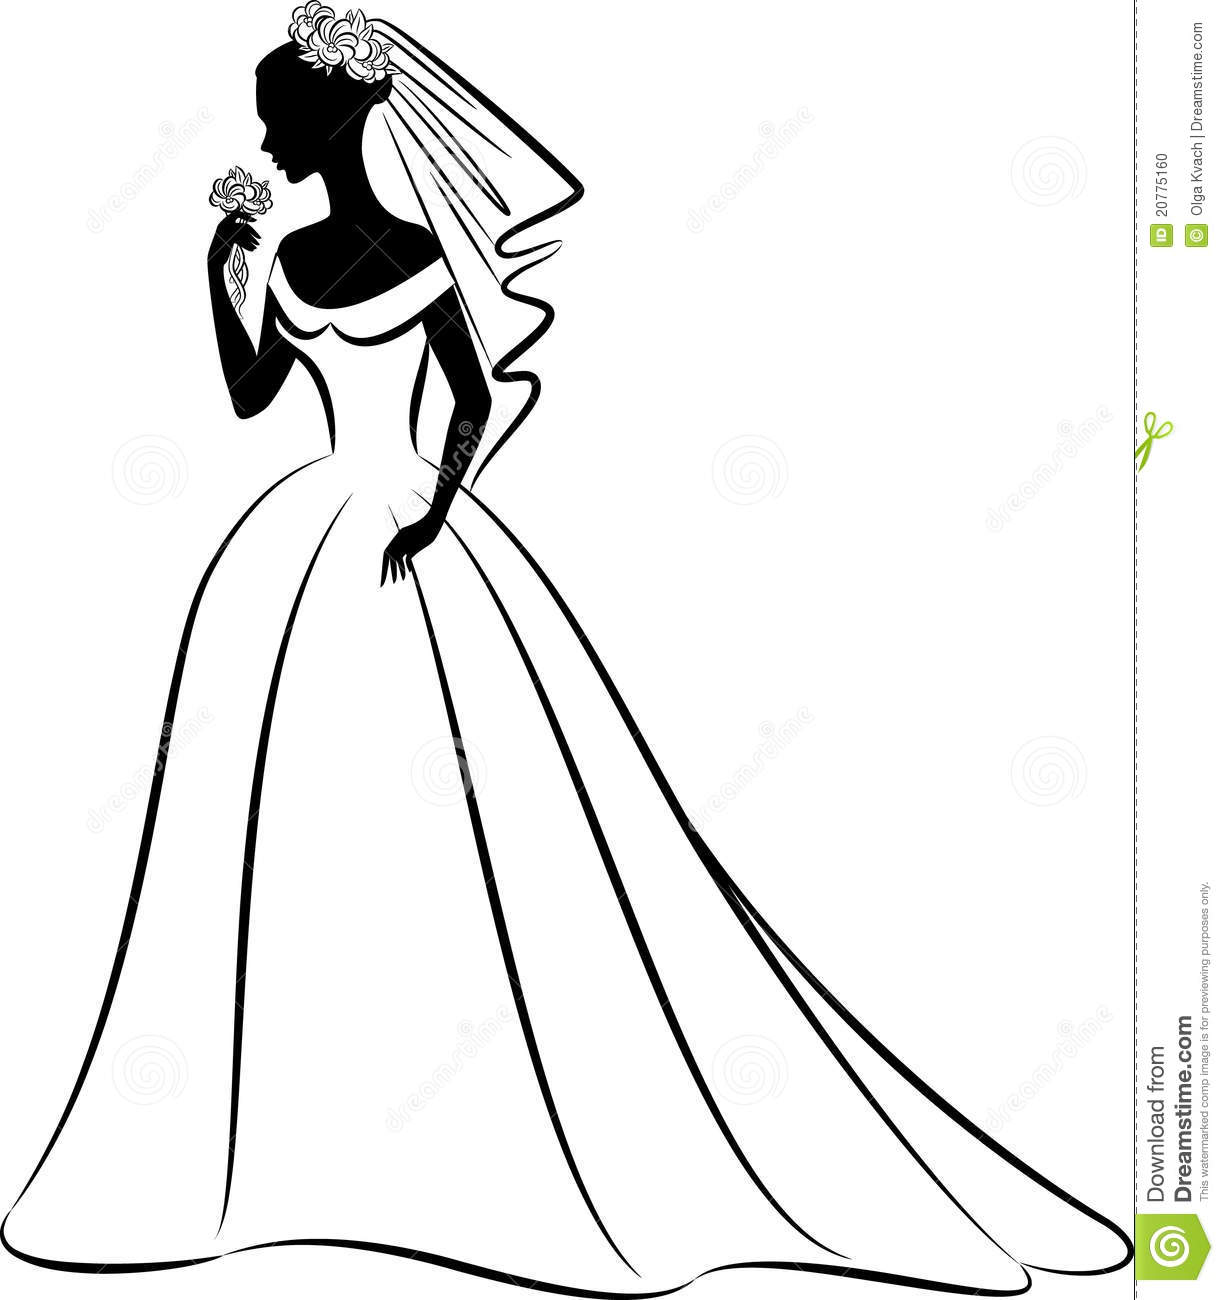 Wedding Party Silhouette Template Free At Getdrawings